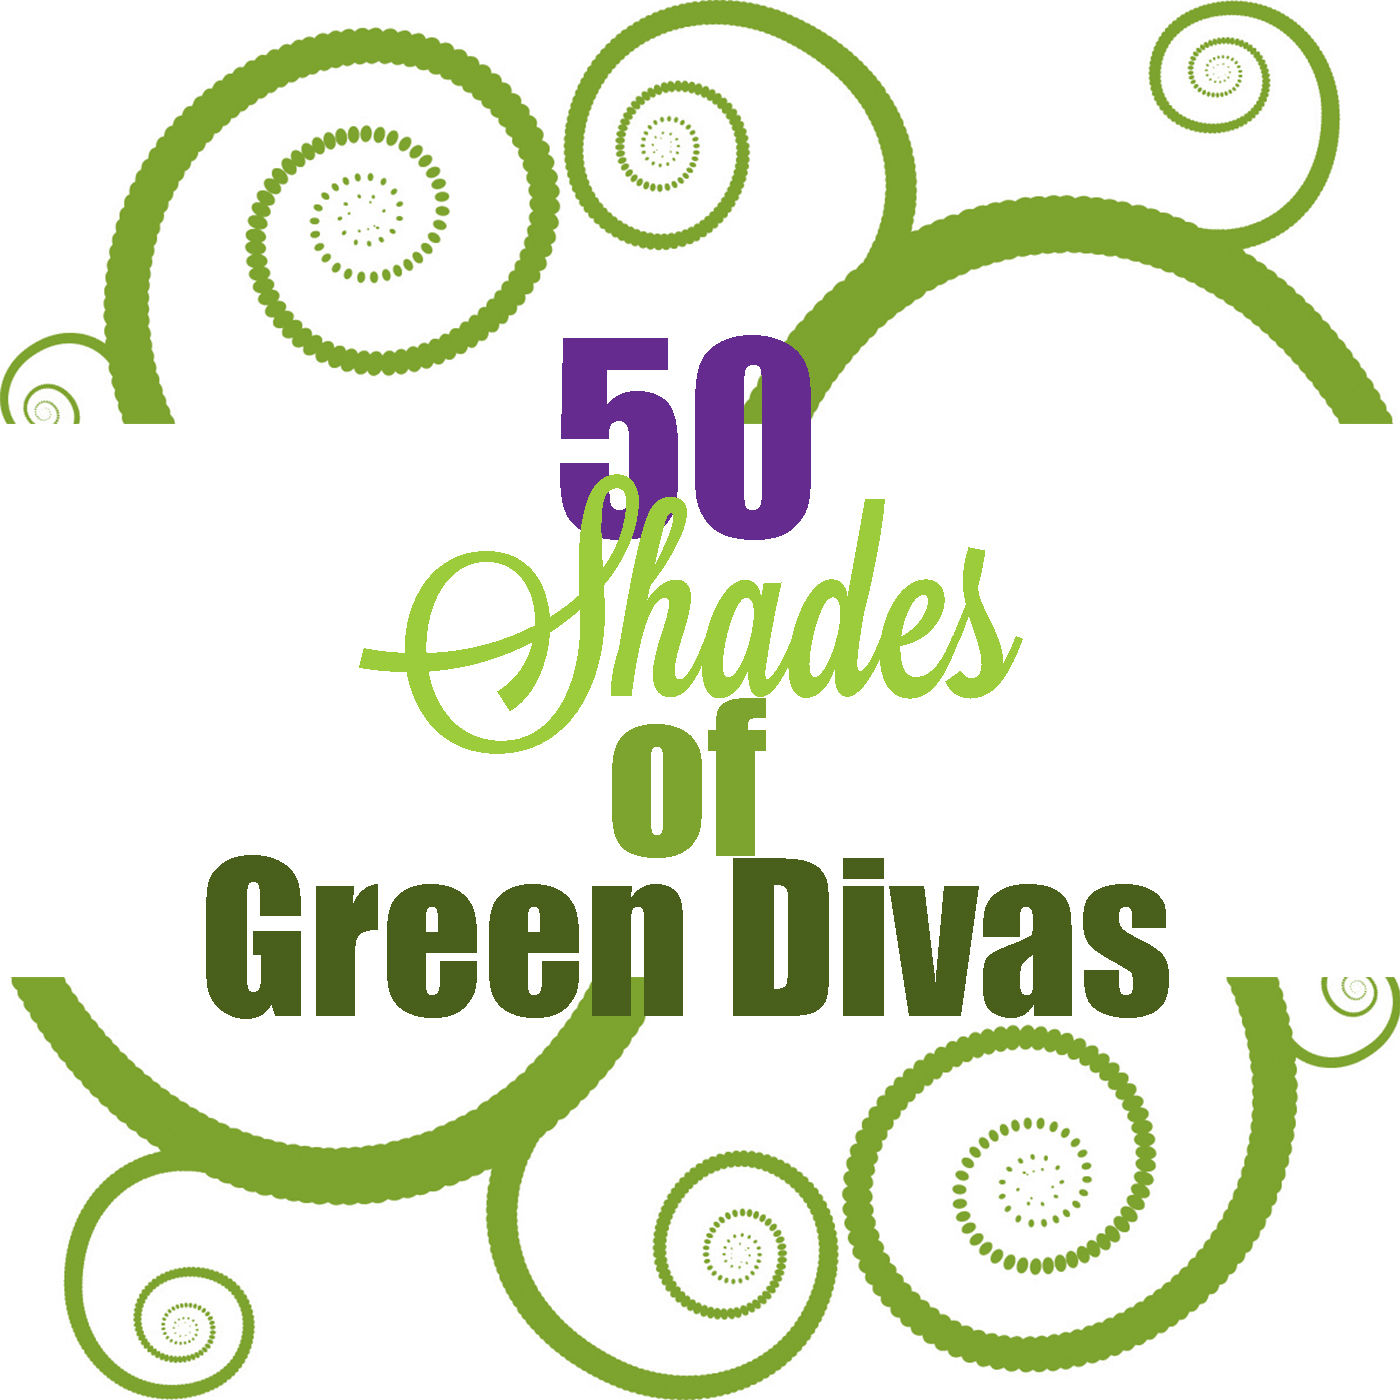 50 Shades of GDs: earth day, eco-heroes, goats & trees